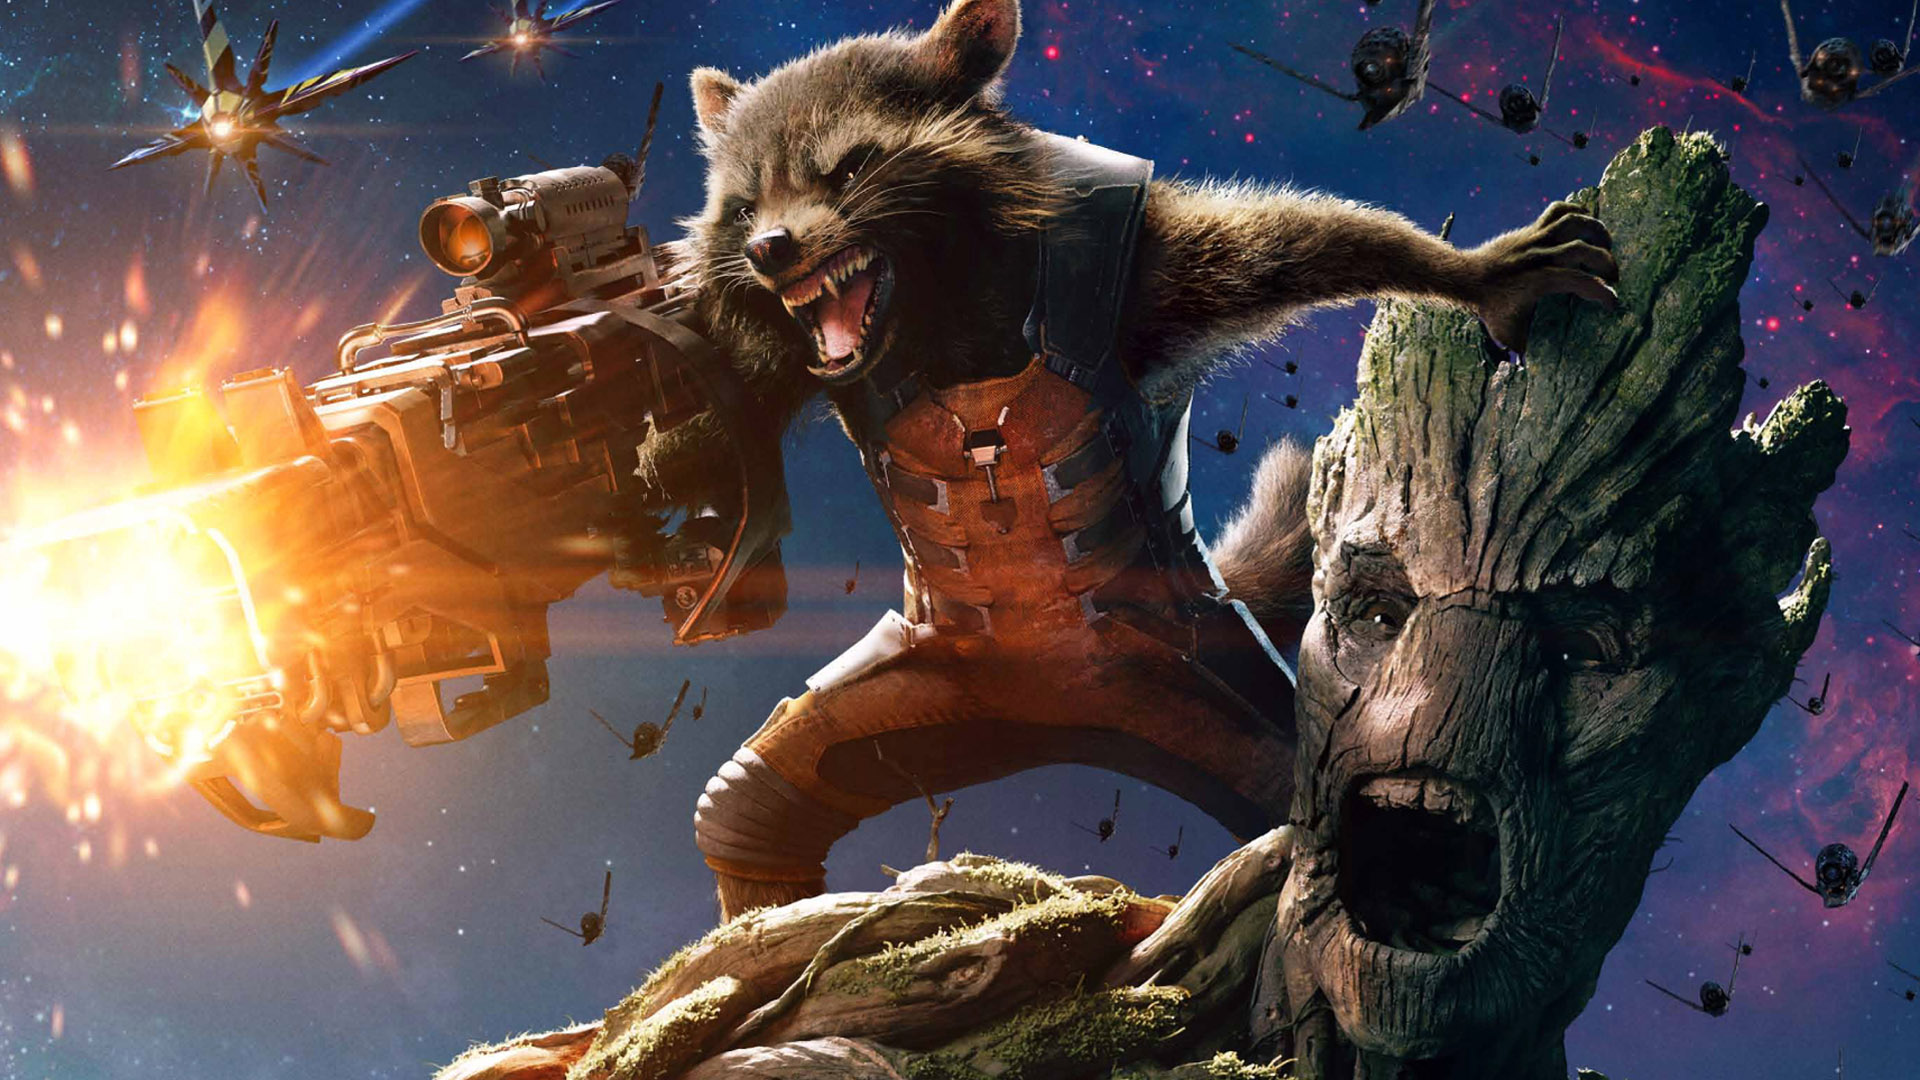 Must see Wallpaper Marvel Guardians The Galaxy - latest?cb\u003d20140819141146  Graphic_807115.jpg/revision/latest?cb\u003d20140819141146